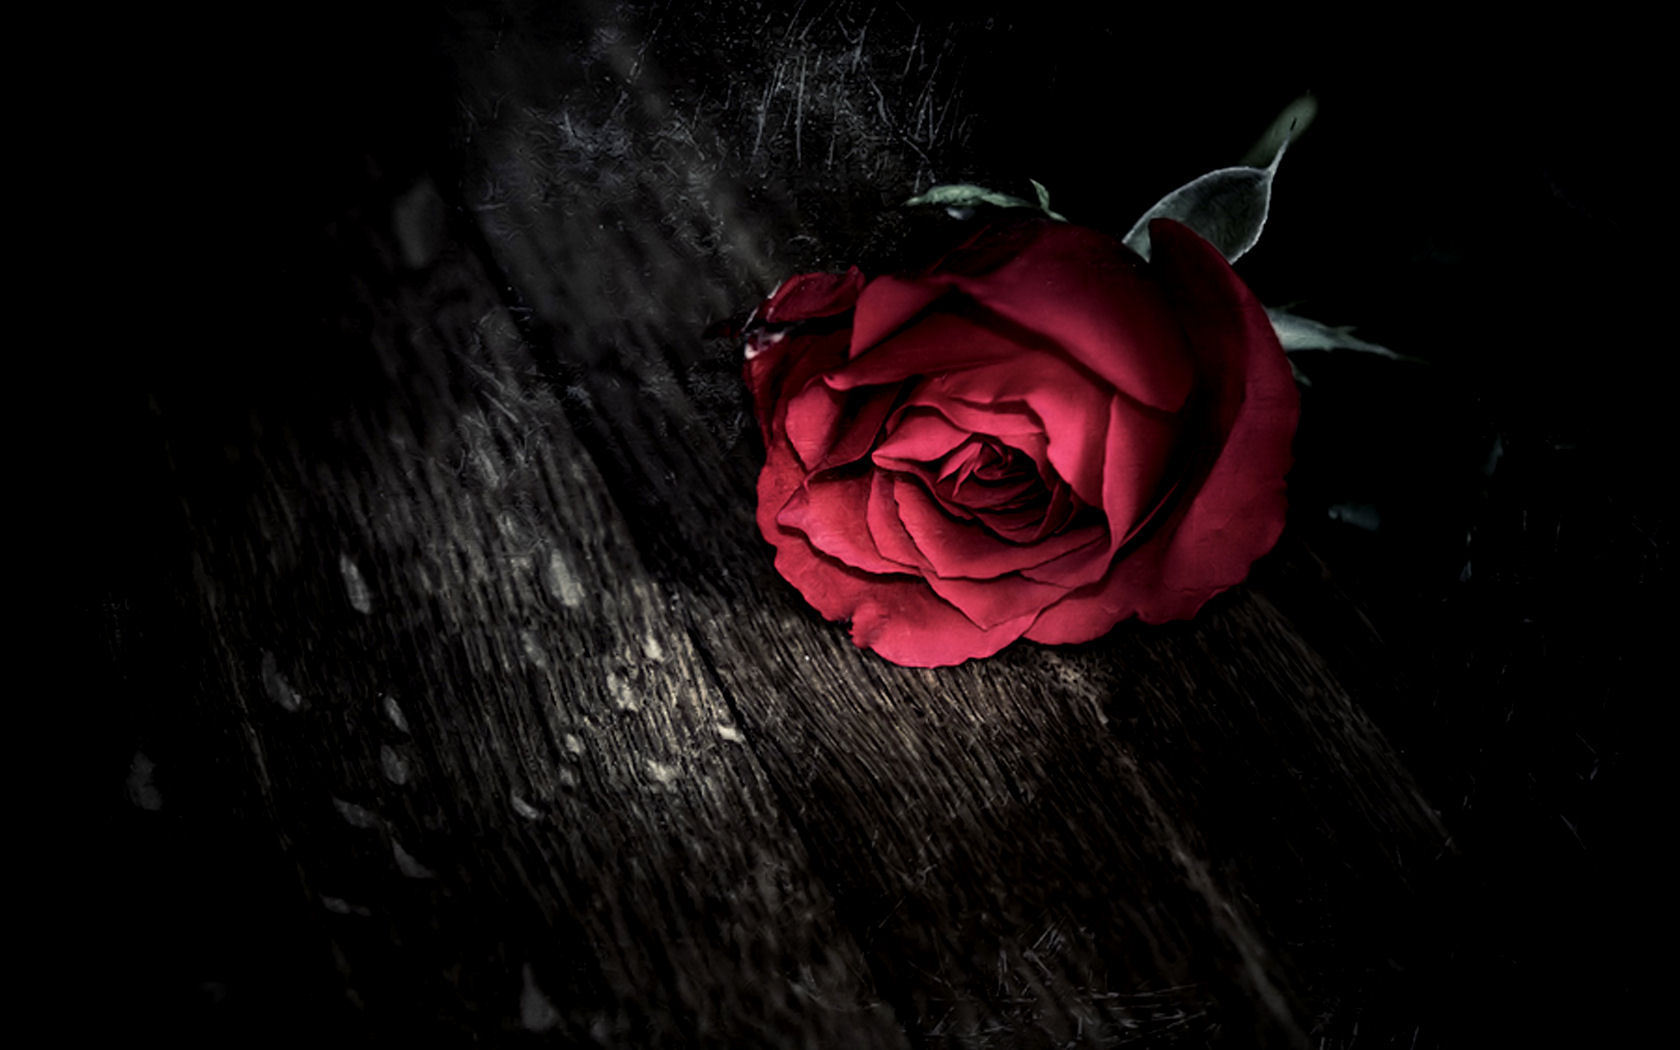 50 Beautiful Red Rose Images To Download – The WoW Style